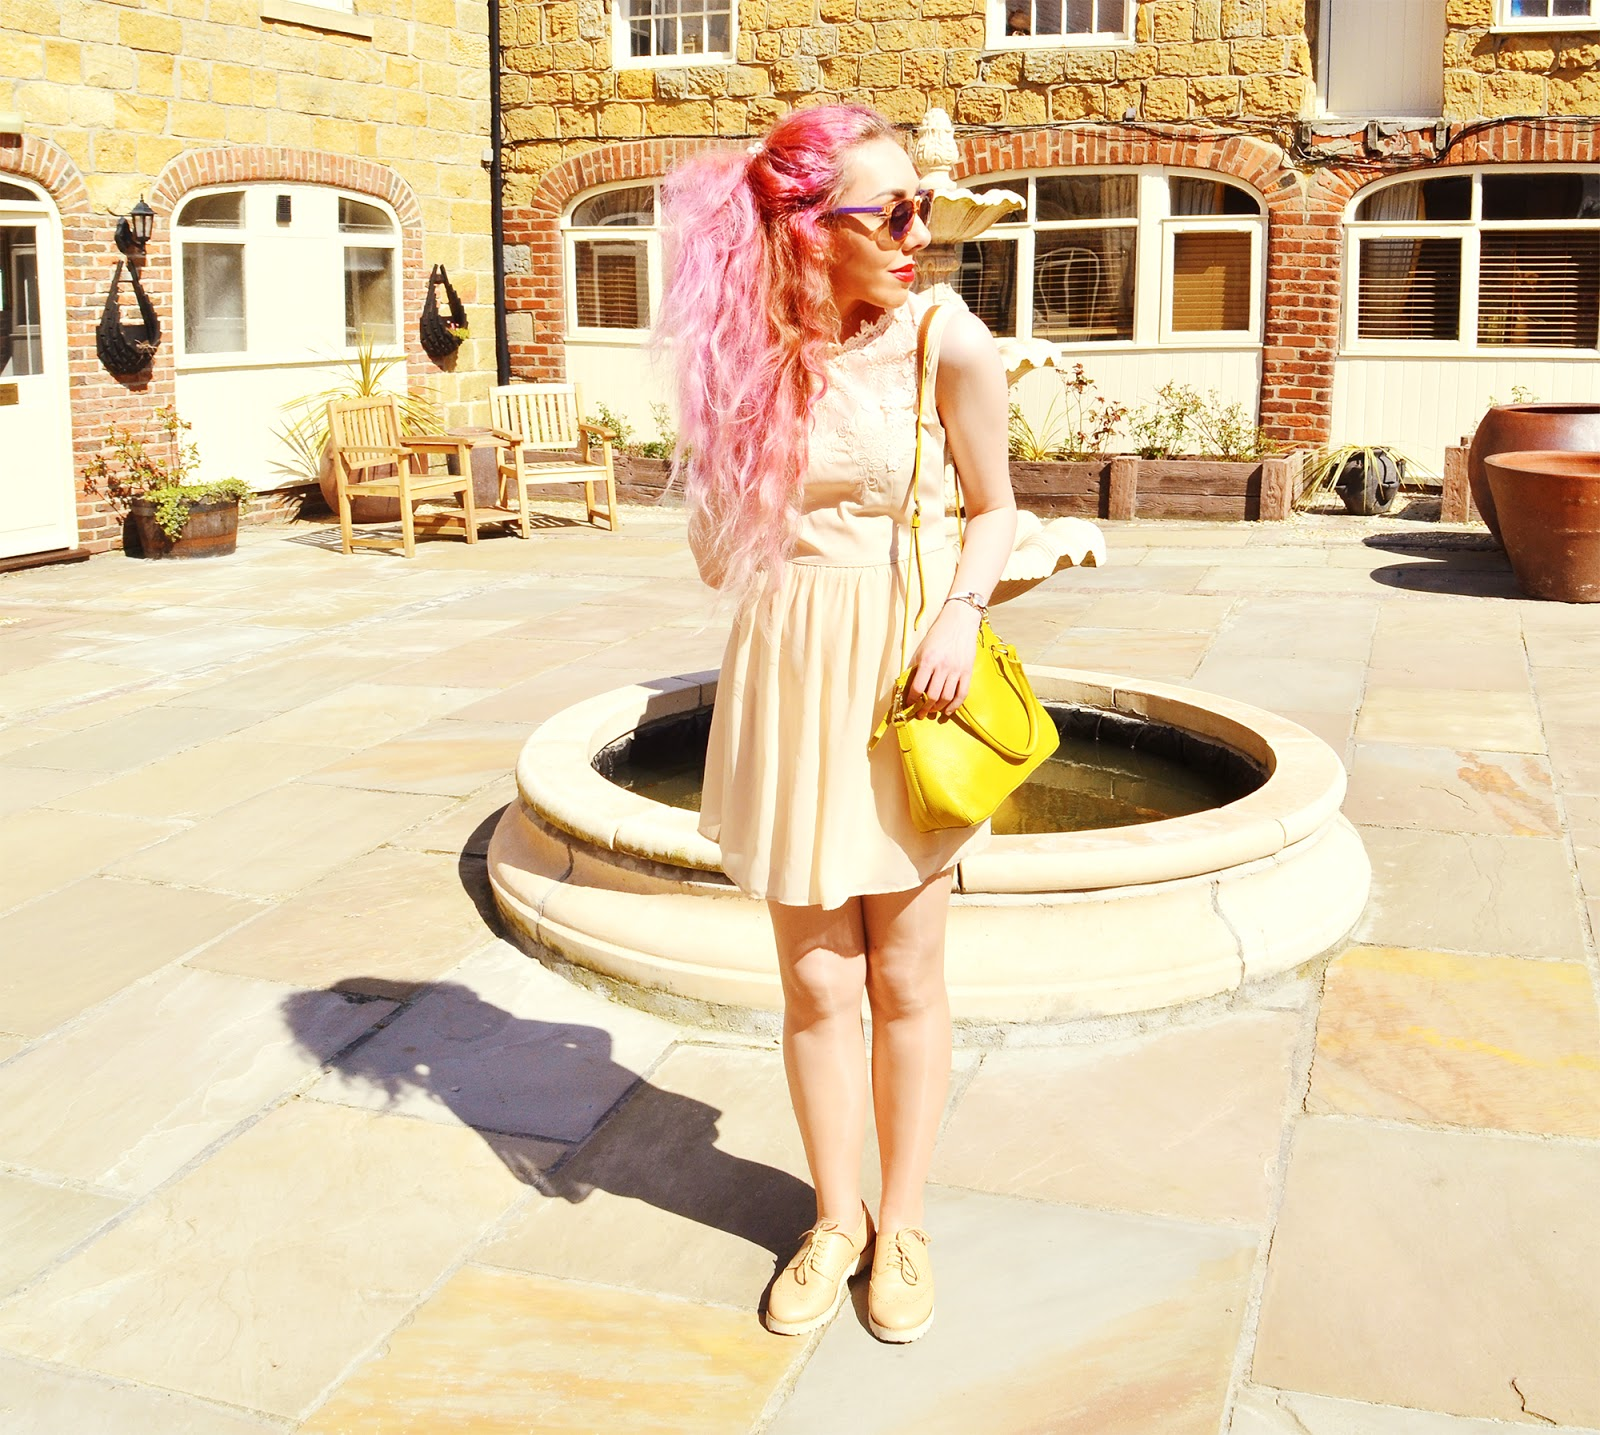 Stephi LaReine // Peach Floral Collar Summer Dress // Oasis (old) Sulphur Yellow Leather Bag * // Boden Clothing DKNY Watch * // House Of Watches Beige Lace Up Platform Brogues * // StyleEdit Carrera Purple Mirrored Sunglasses * // Sunglasses Shop